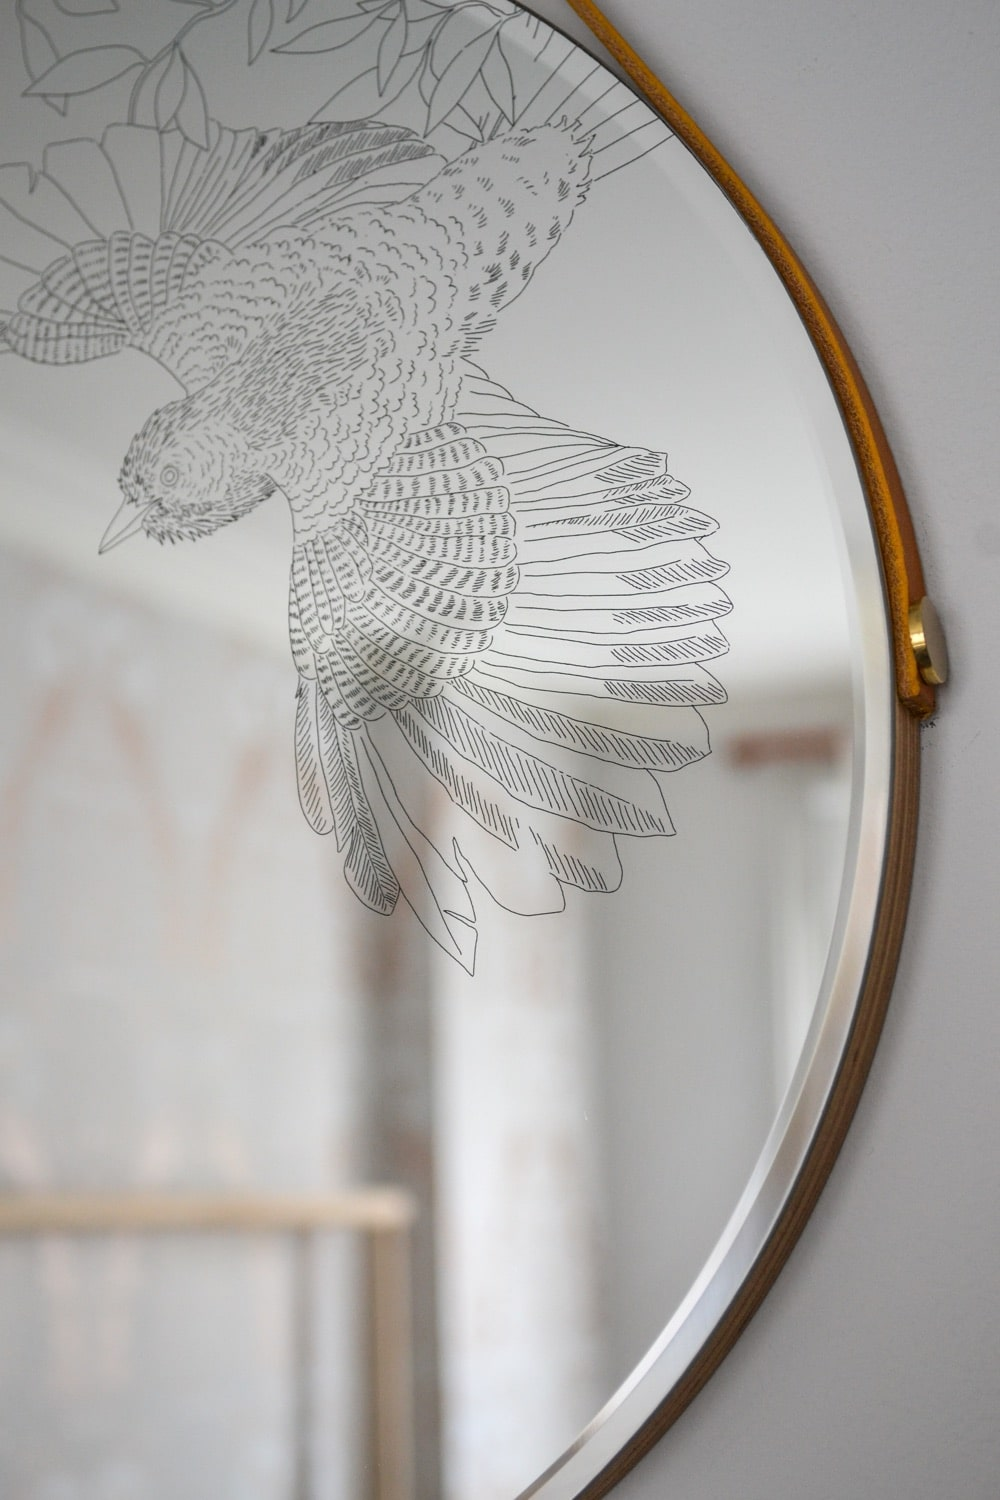 We are delighted to introduce these beautiful engraved mirrors by artist and maker Daniel Heath. Daniel's signature bird illustrations add a delicate and distinctive detail to the circular designs. The smaller 35cm mirror uses the well known'Swooping Jay' motif while the 50cm diameter mirror has new 'Heronry' design which is inspired by the opening of Walthamstow Wetlands, Europe's largest urban wetland, which hosts abundant wildfowl in their natural habitat.  A round mirror ad...